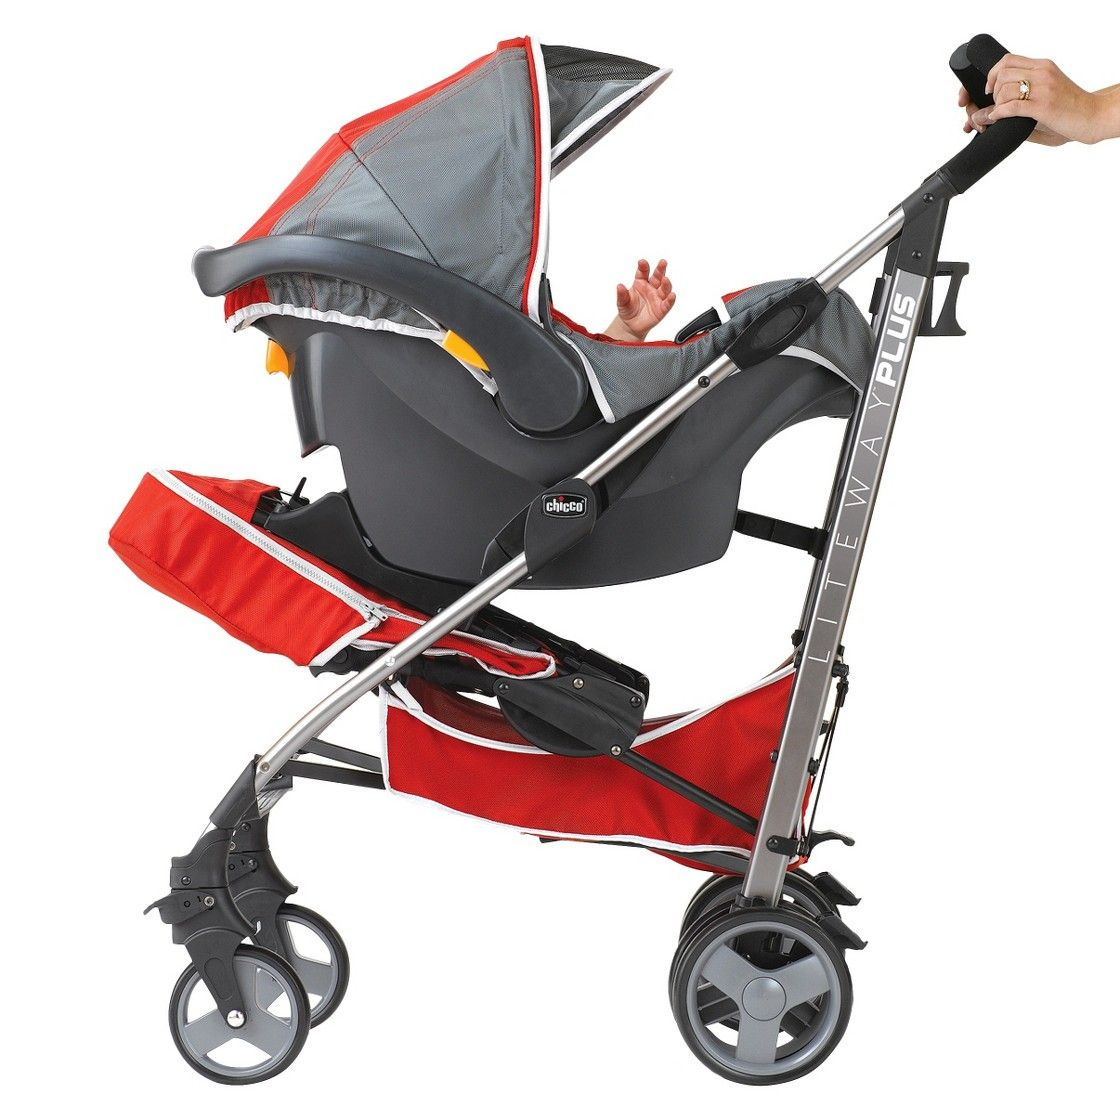 Chicco Liteway Plus Snapdragon Coches para bebes